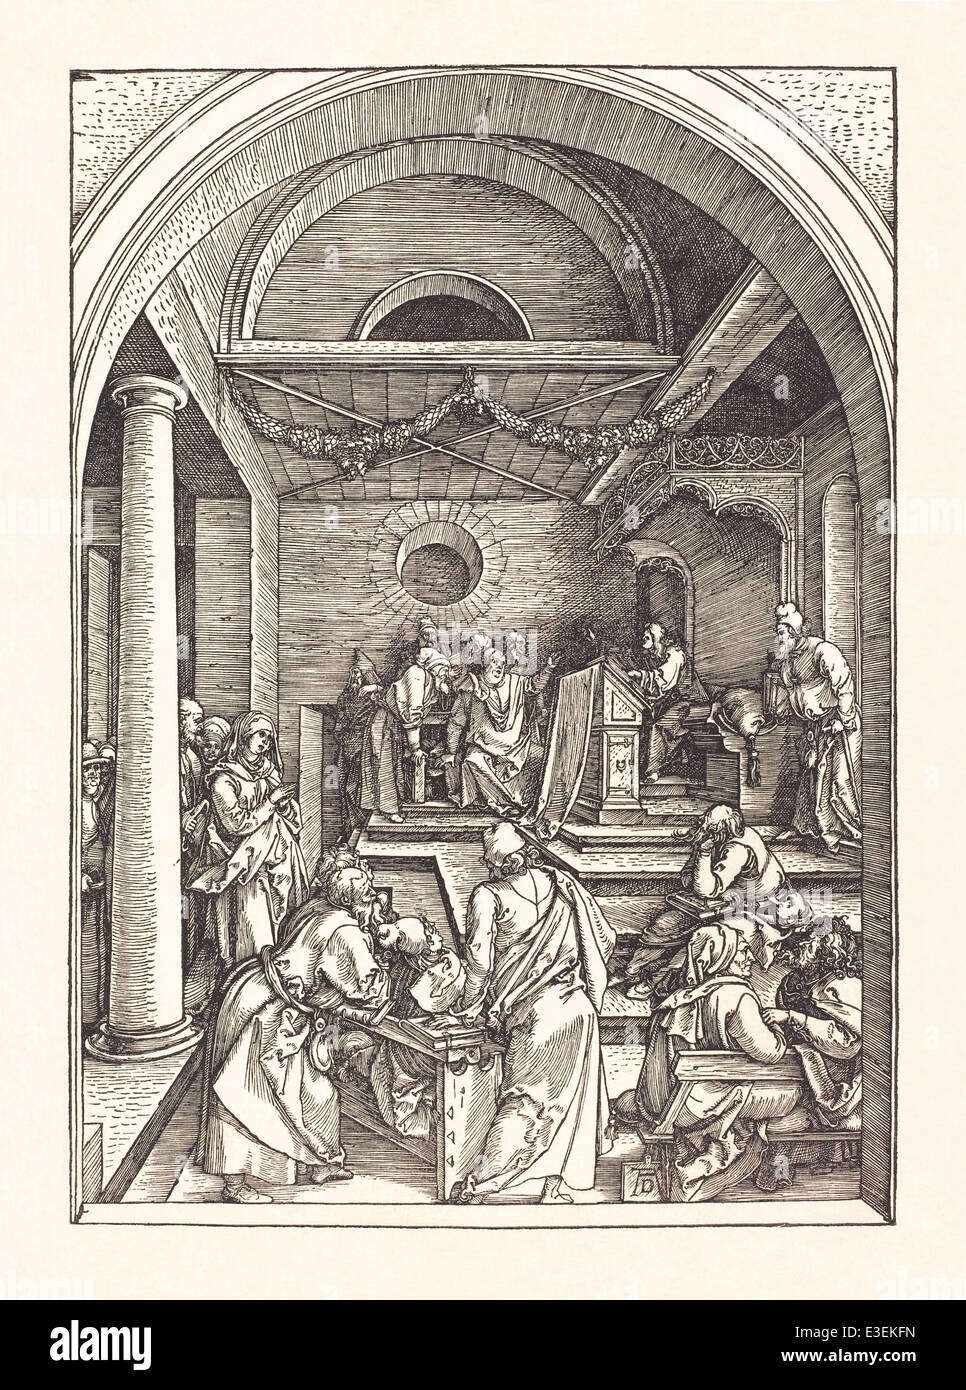 Albrecht Dürer (1471-1528) woodcut  depicting 'Christ among the Doctors in the Temple' published in 1503. - Stock Image